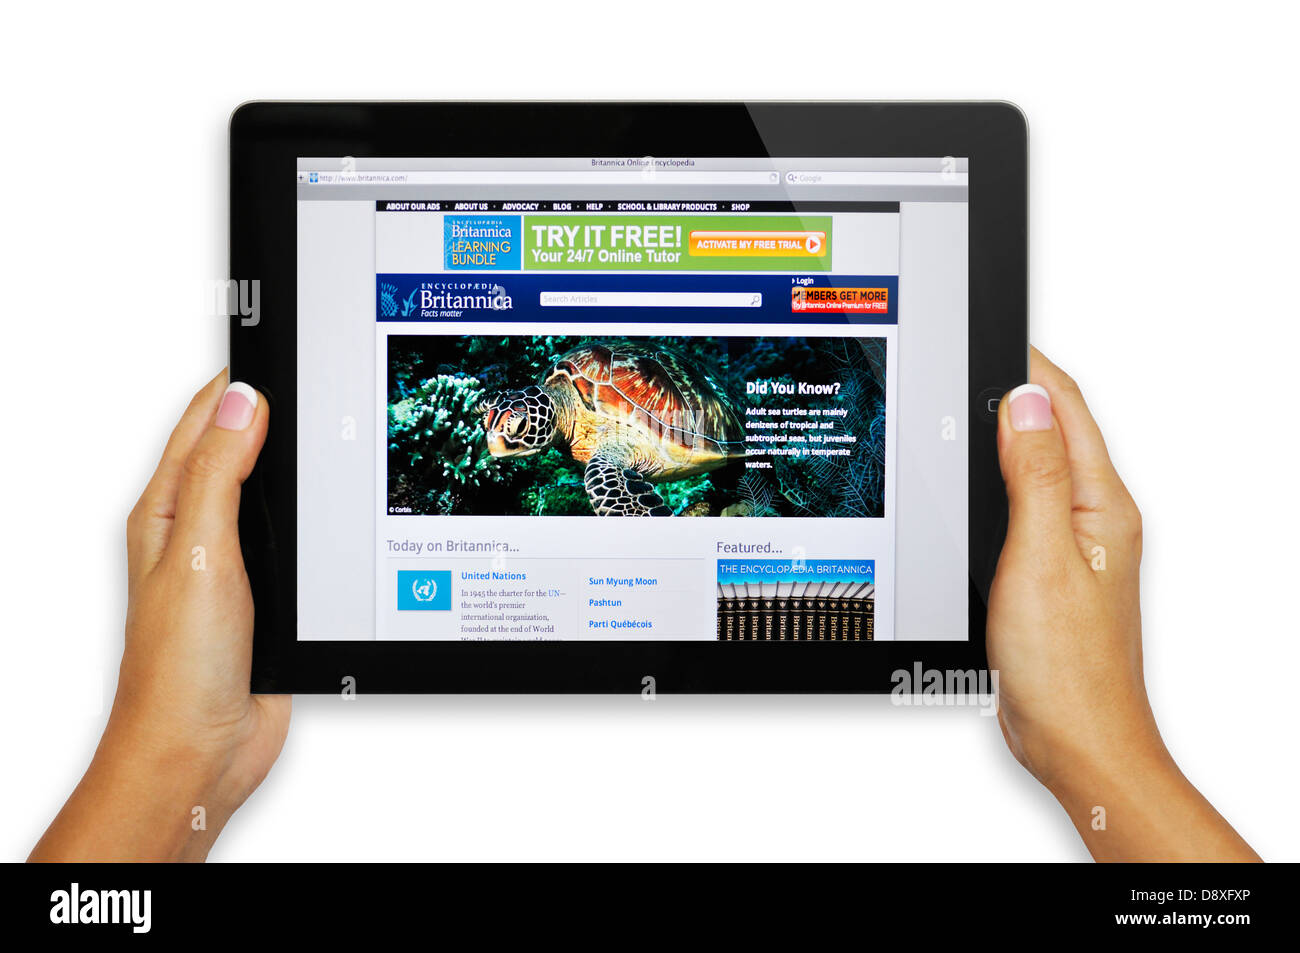 Encyclopaedia Britannica  website on iPad - Stock Image